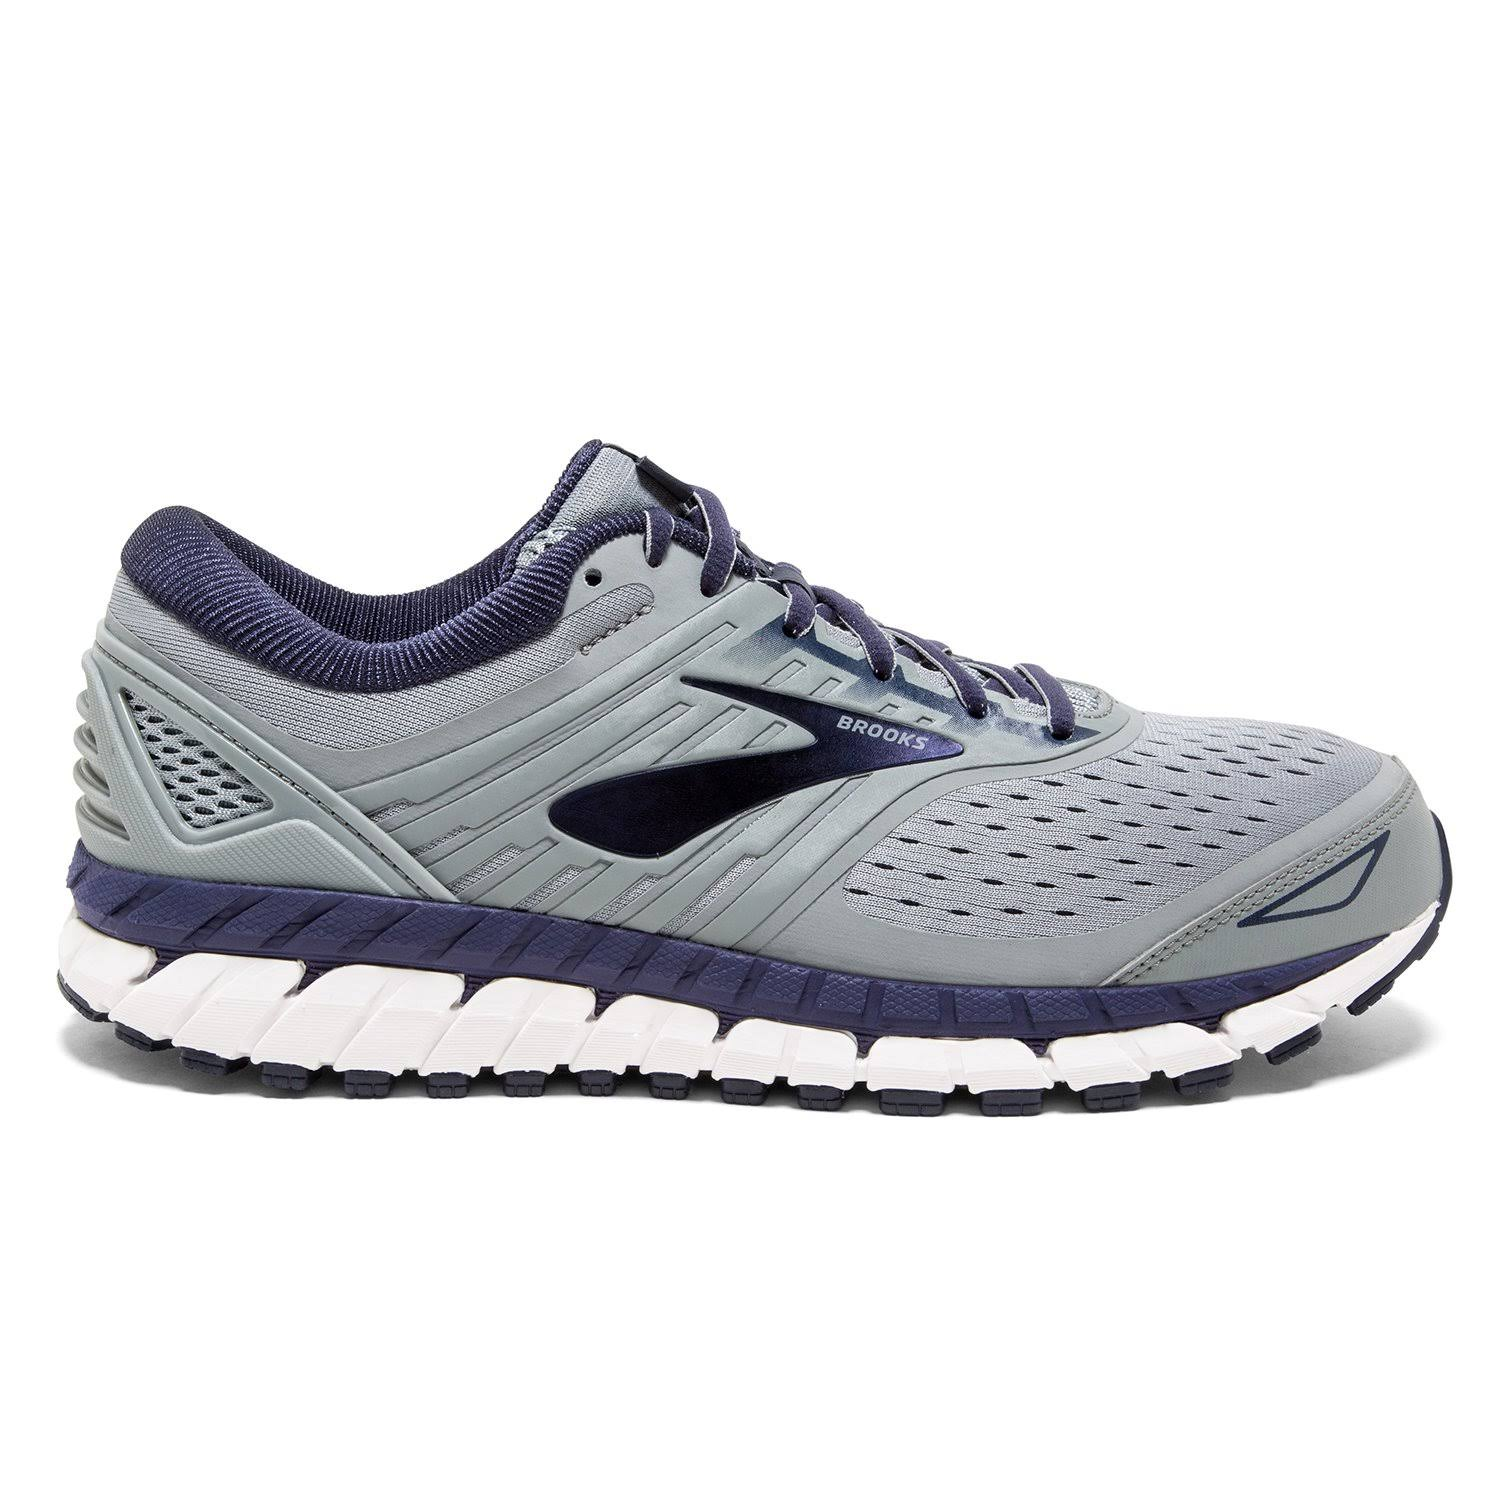 Brooks Beast '18 Men's Running Shoes Grey/Navy/White : 16 4E - Extra Wide